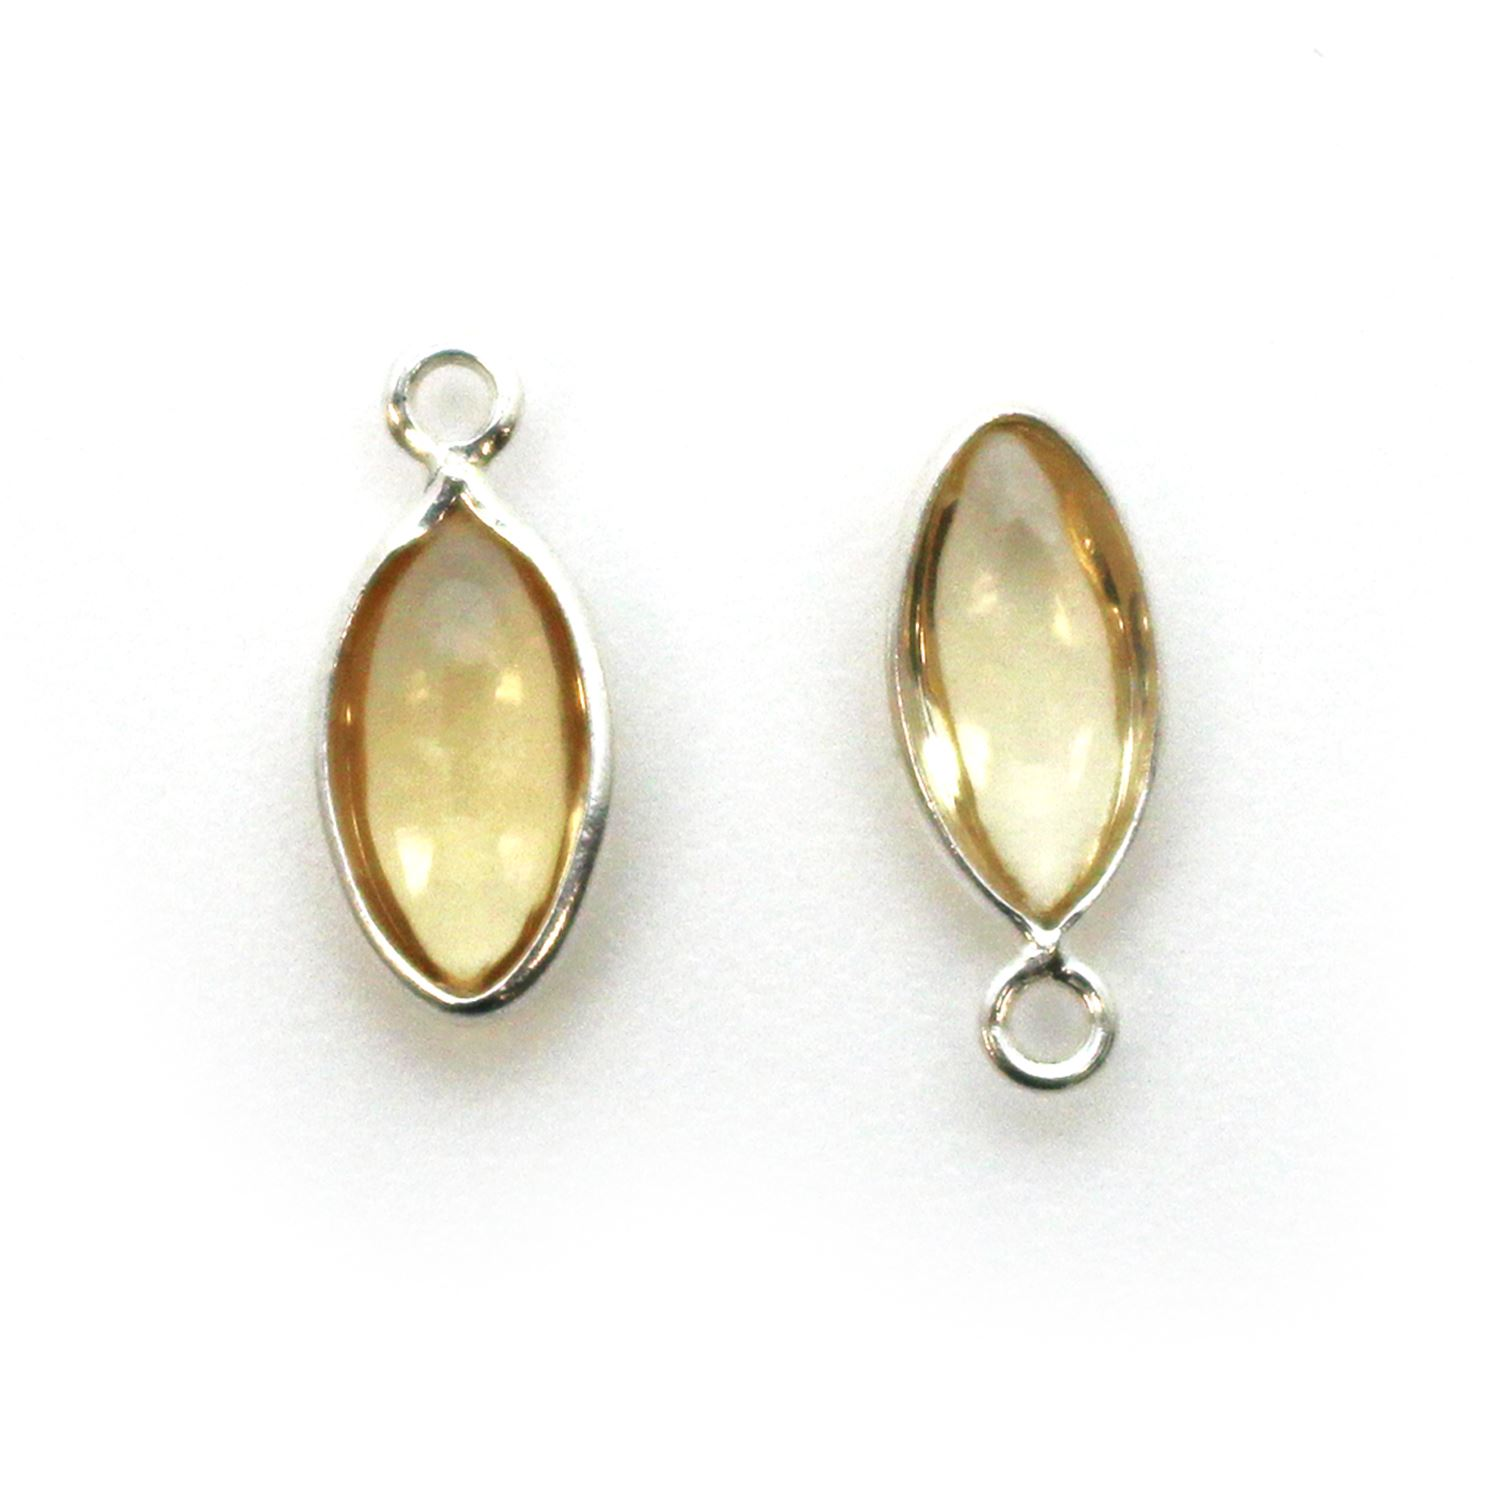 Bezel Charm Pendant - Sterling Silver Charm - Natural Citrine- Tiny Marquise Shape -6x13mm